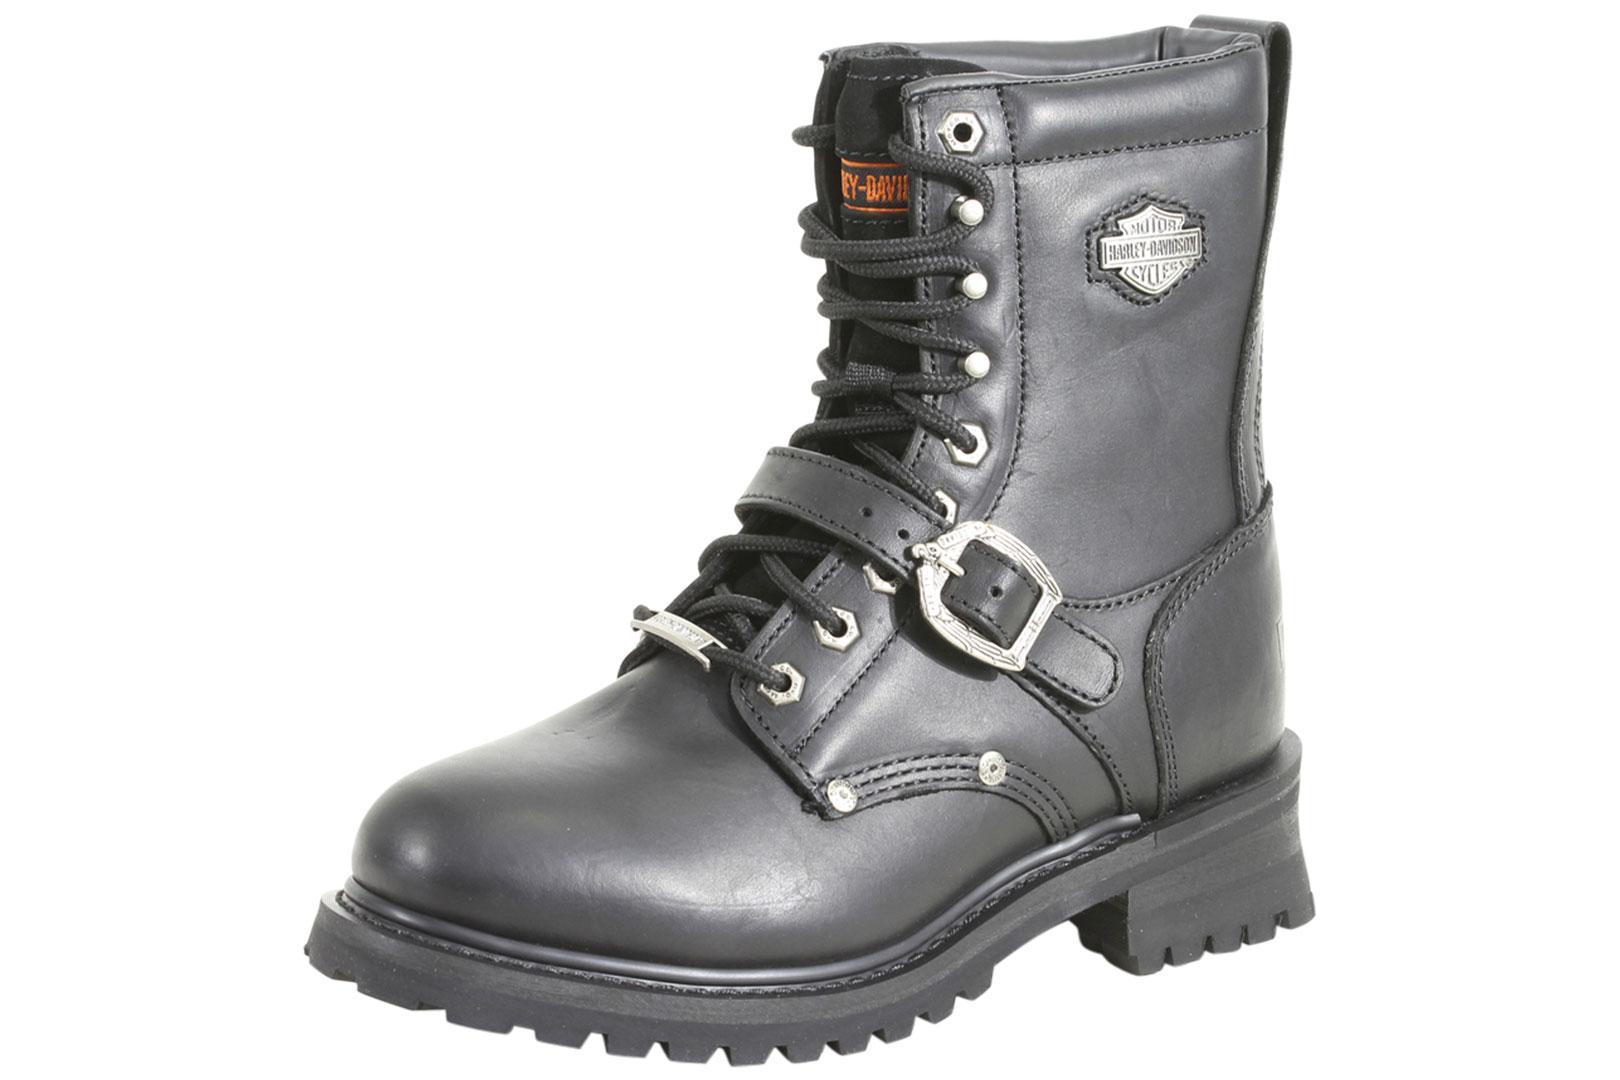 928f7ac1cfe Harley-Davidson Men's Faded Glory Motorcycle Boots Shoes